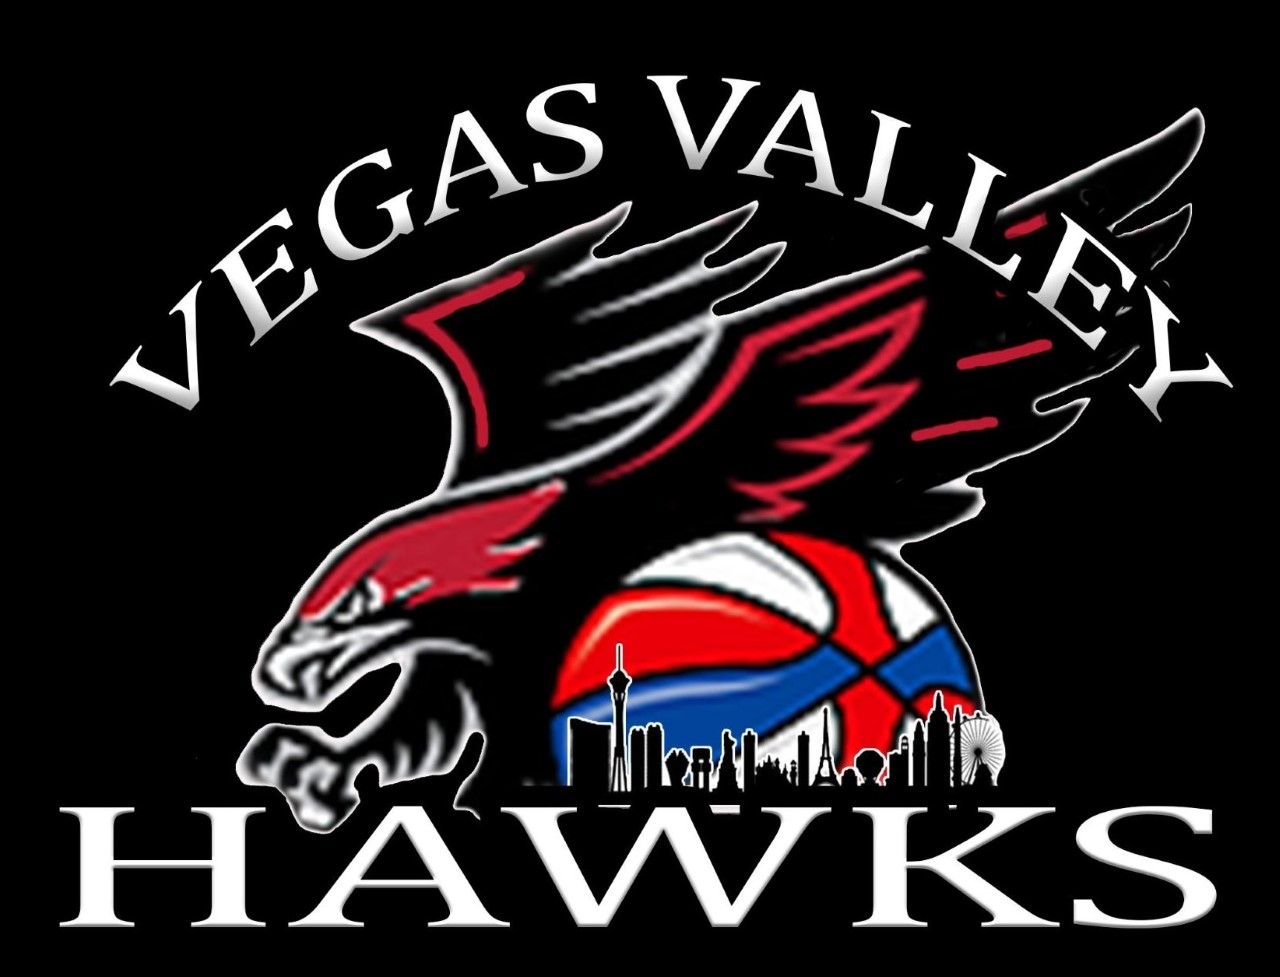 Vegas Valley Hawks